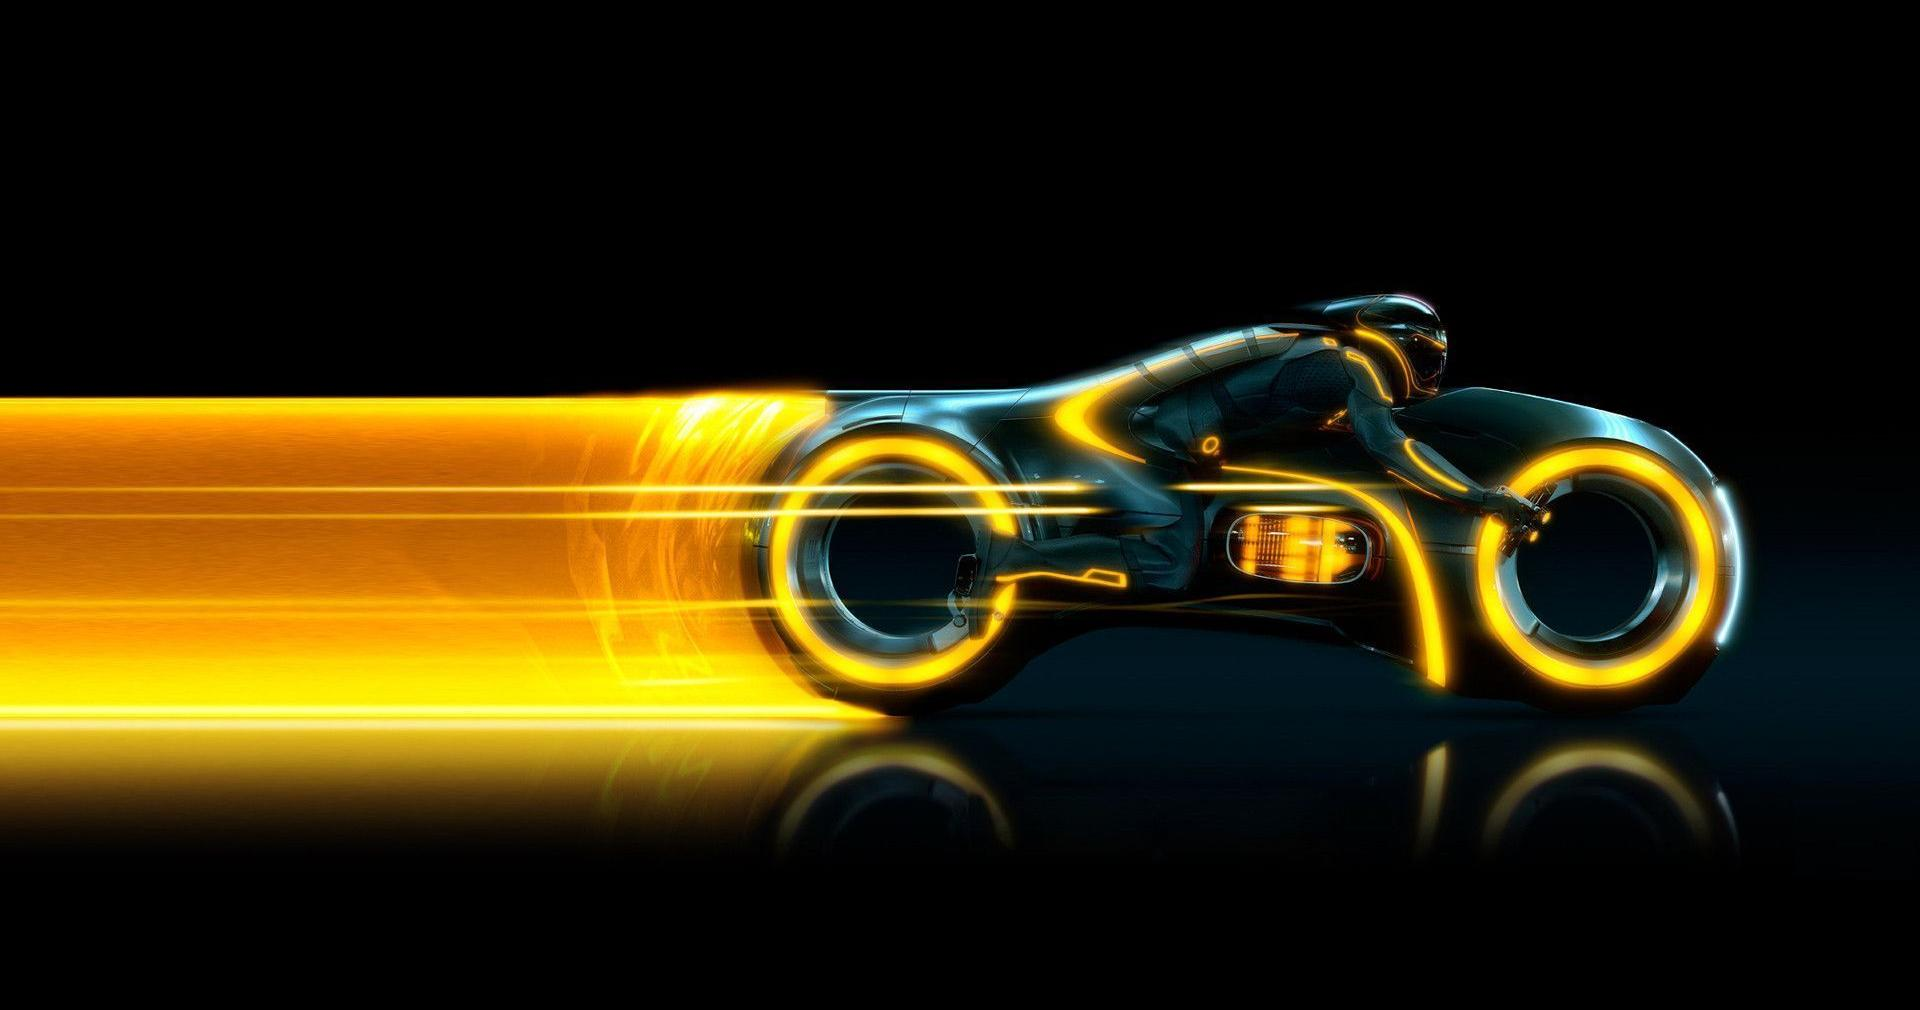 TRON Legacy Wallpapers HD Download 1920x1010